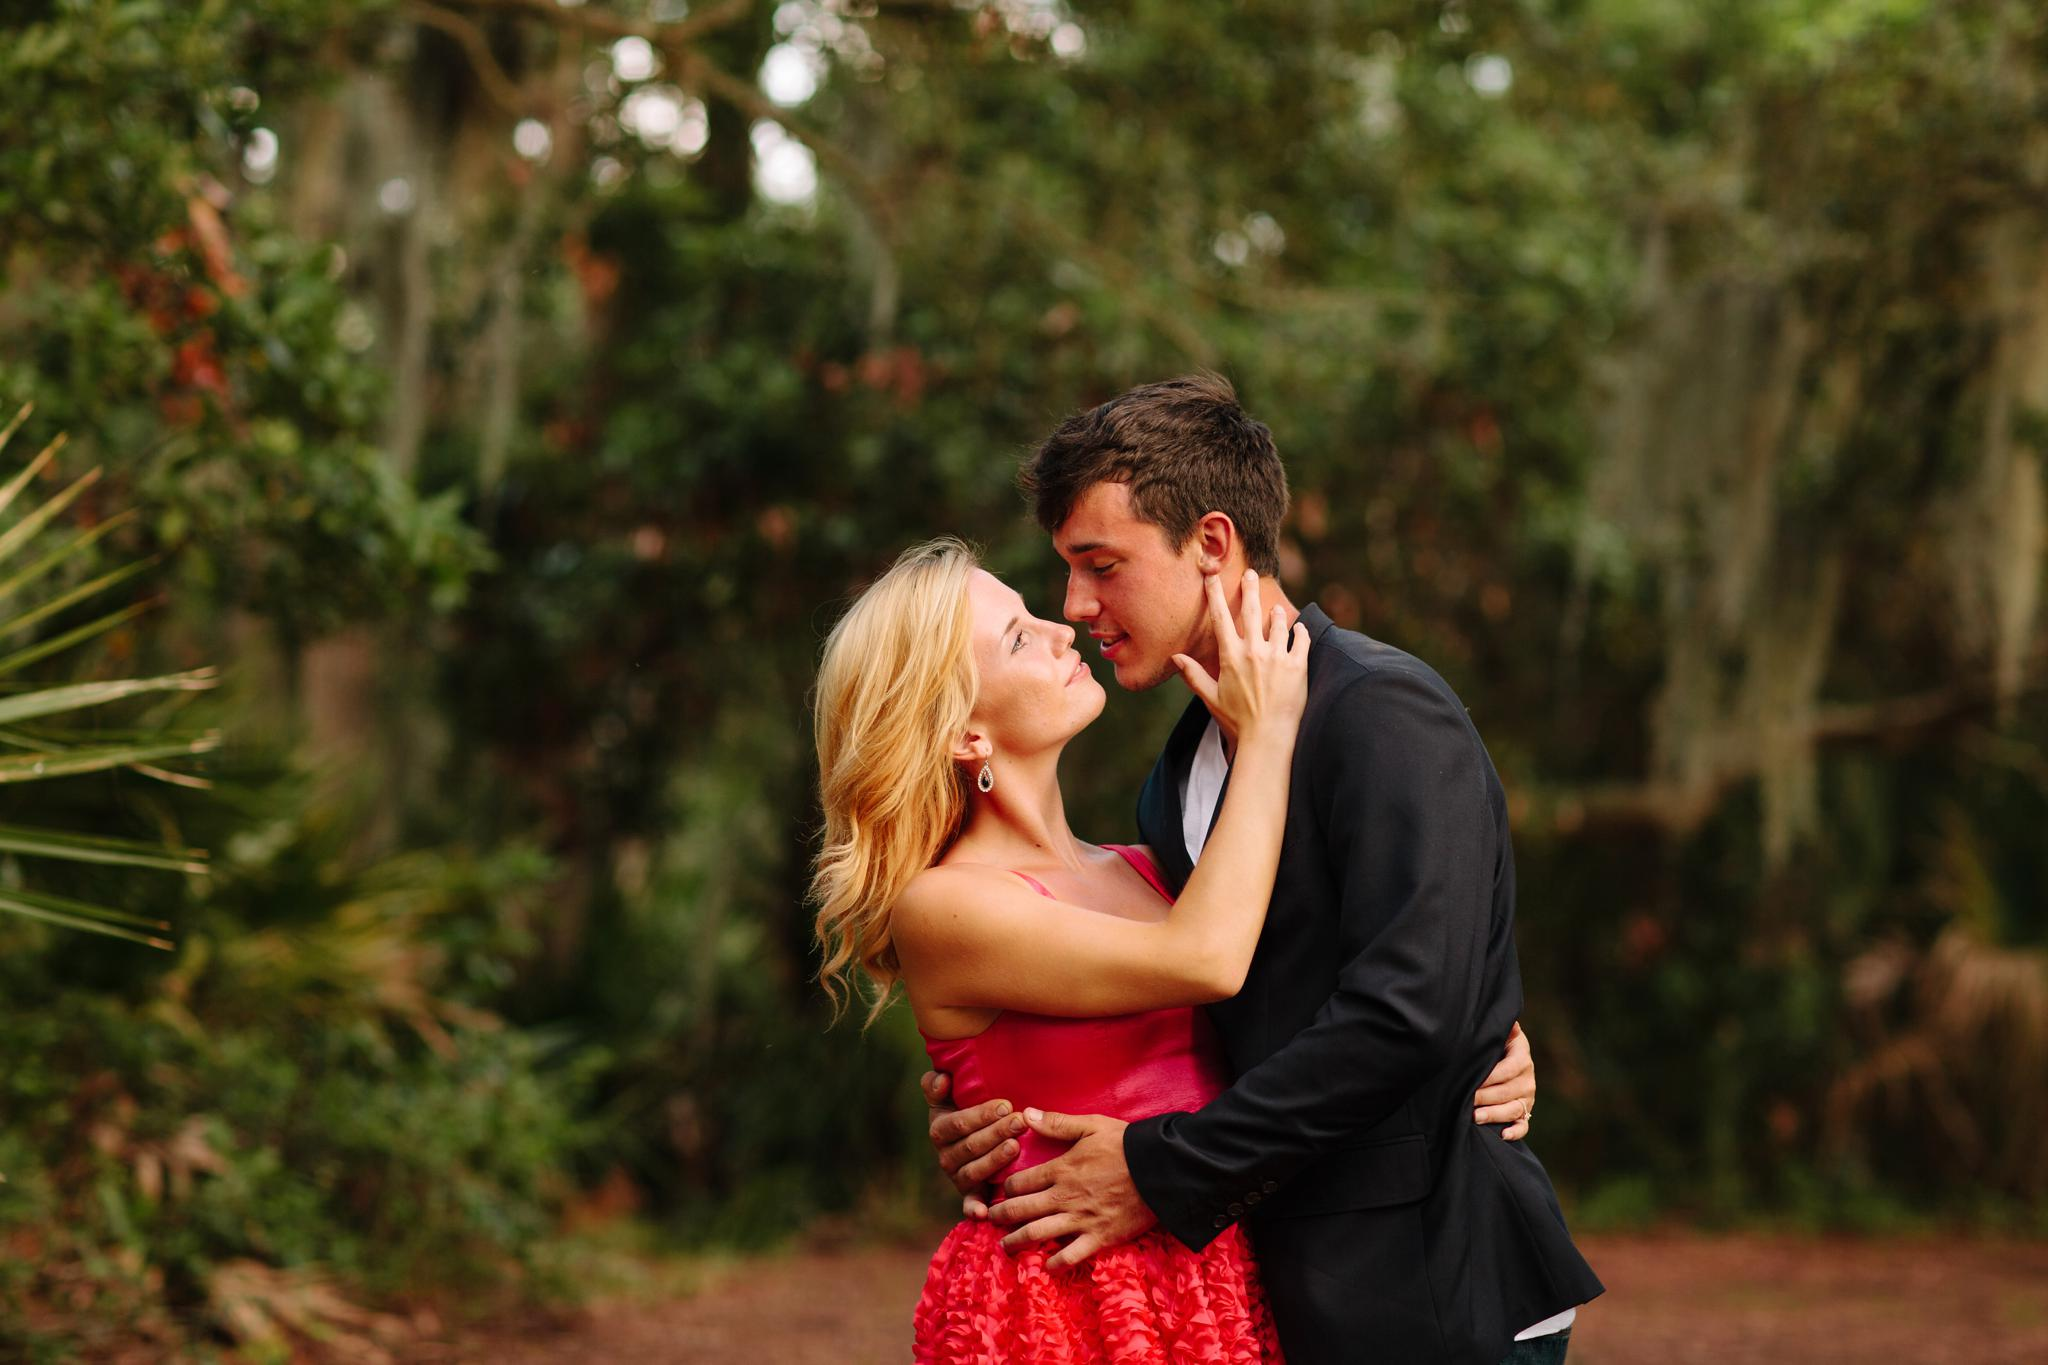 harbor_island_engagement_8352.jpg